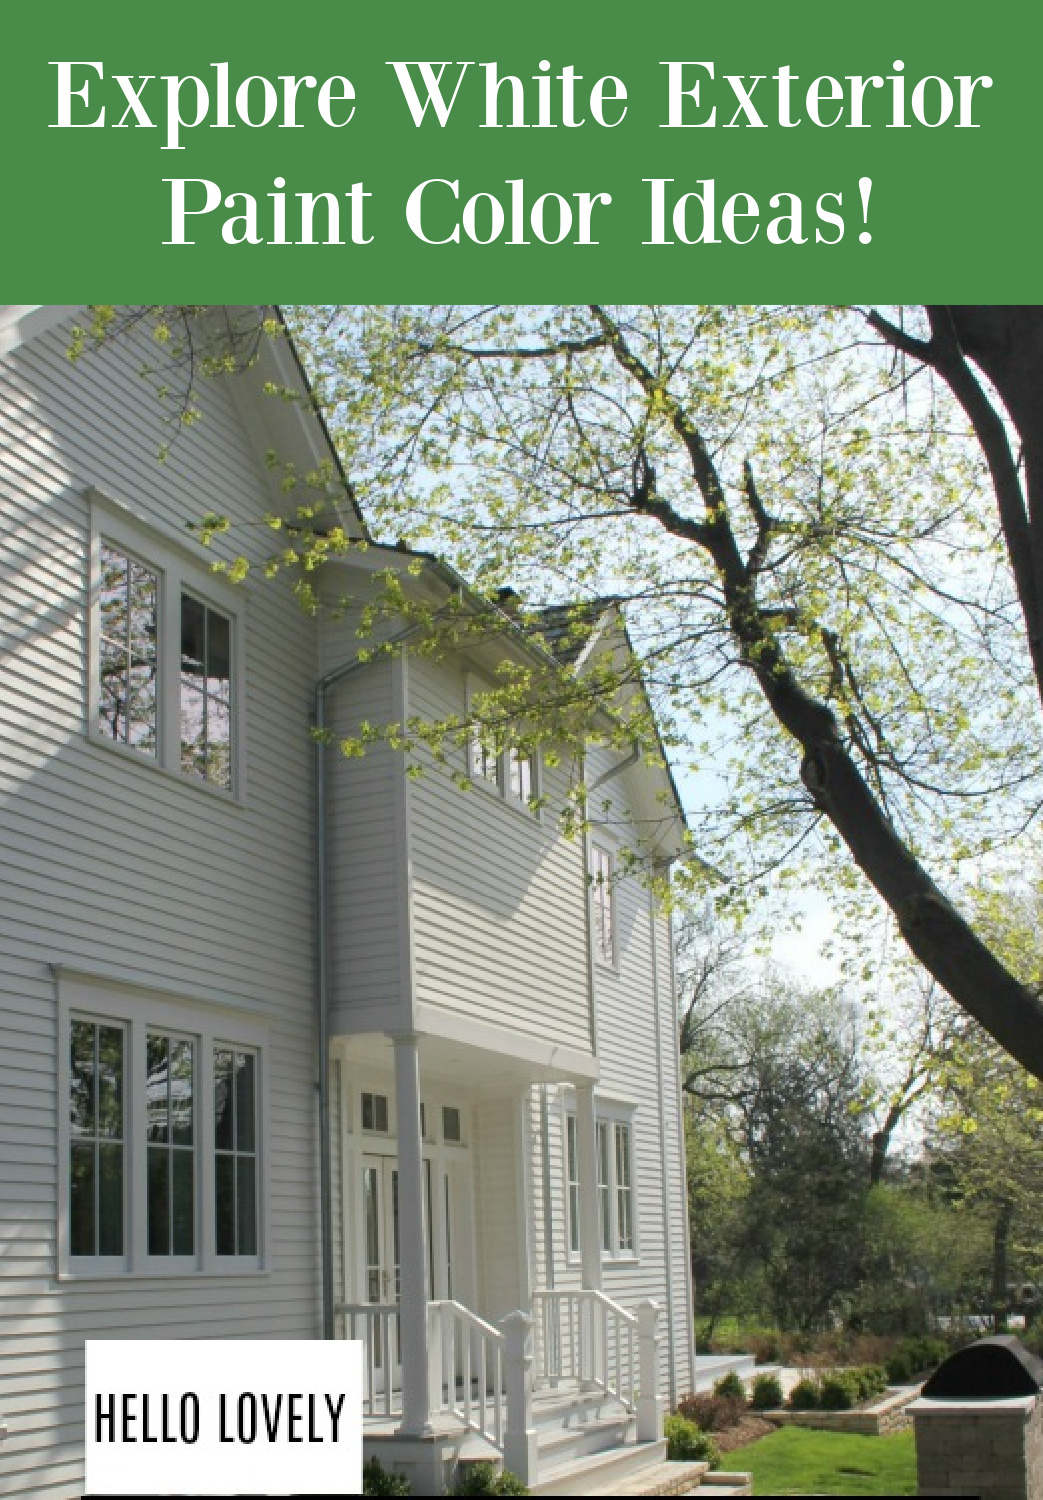 Explore white exterior paint color ideas - Hello Lovely Studio. #paintcolors #whitepaint #houseexteriors